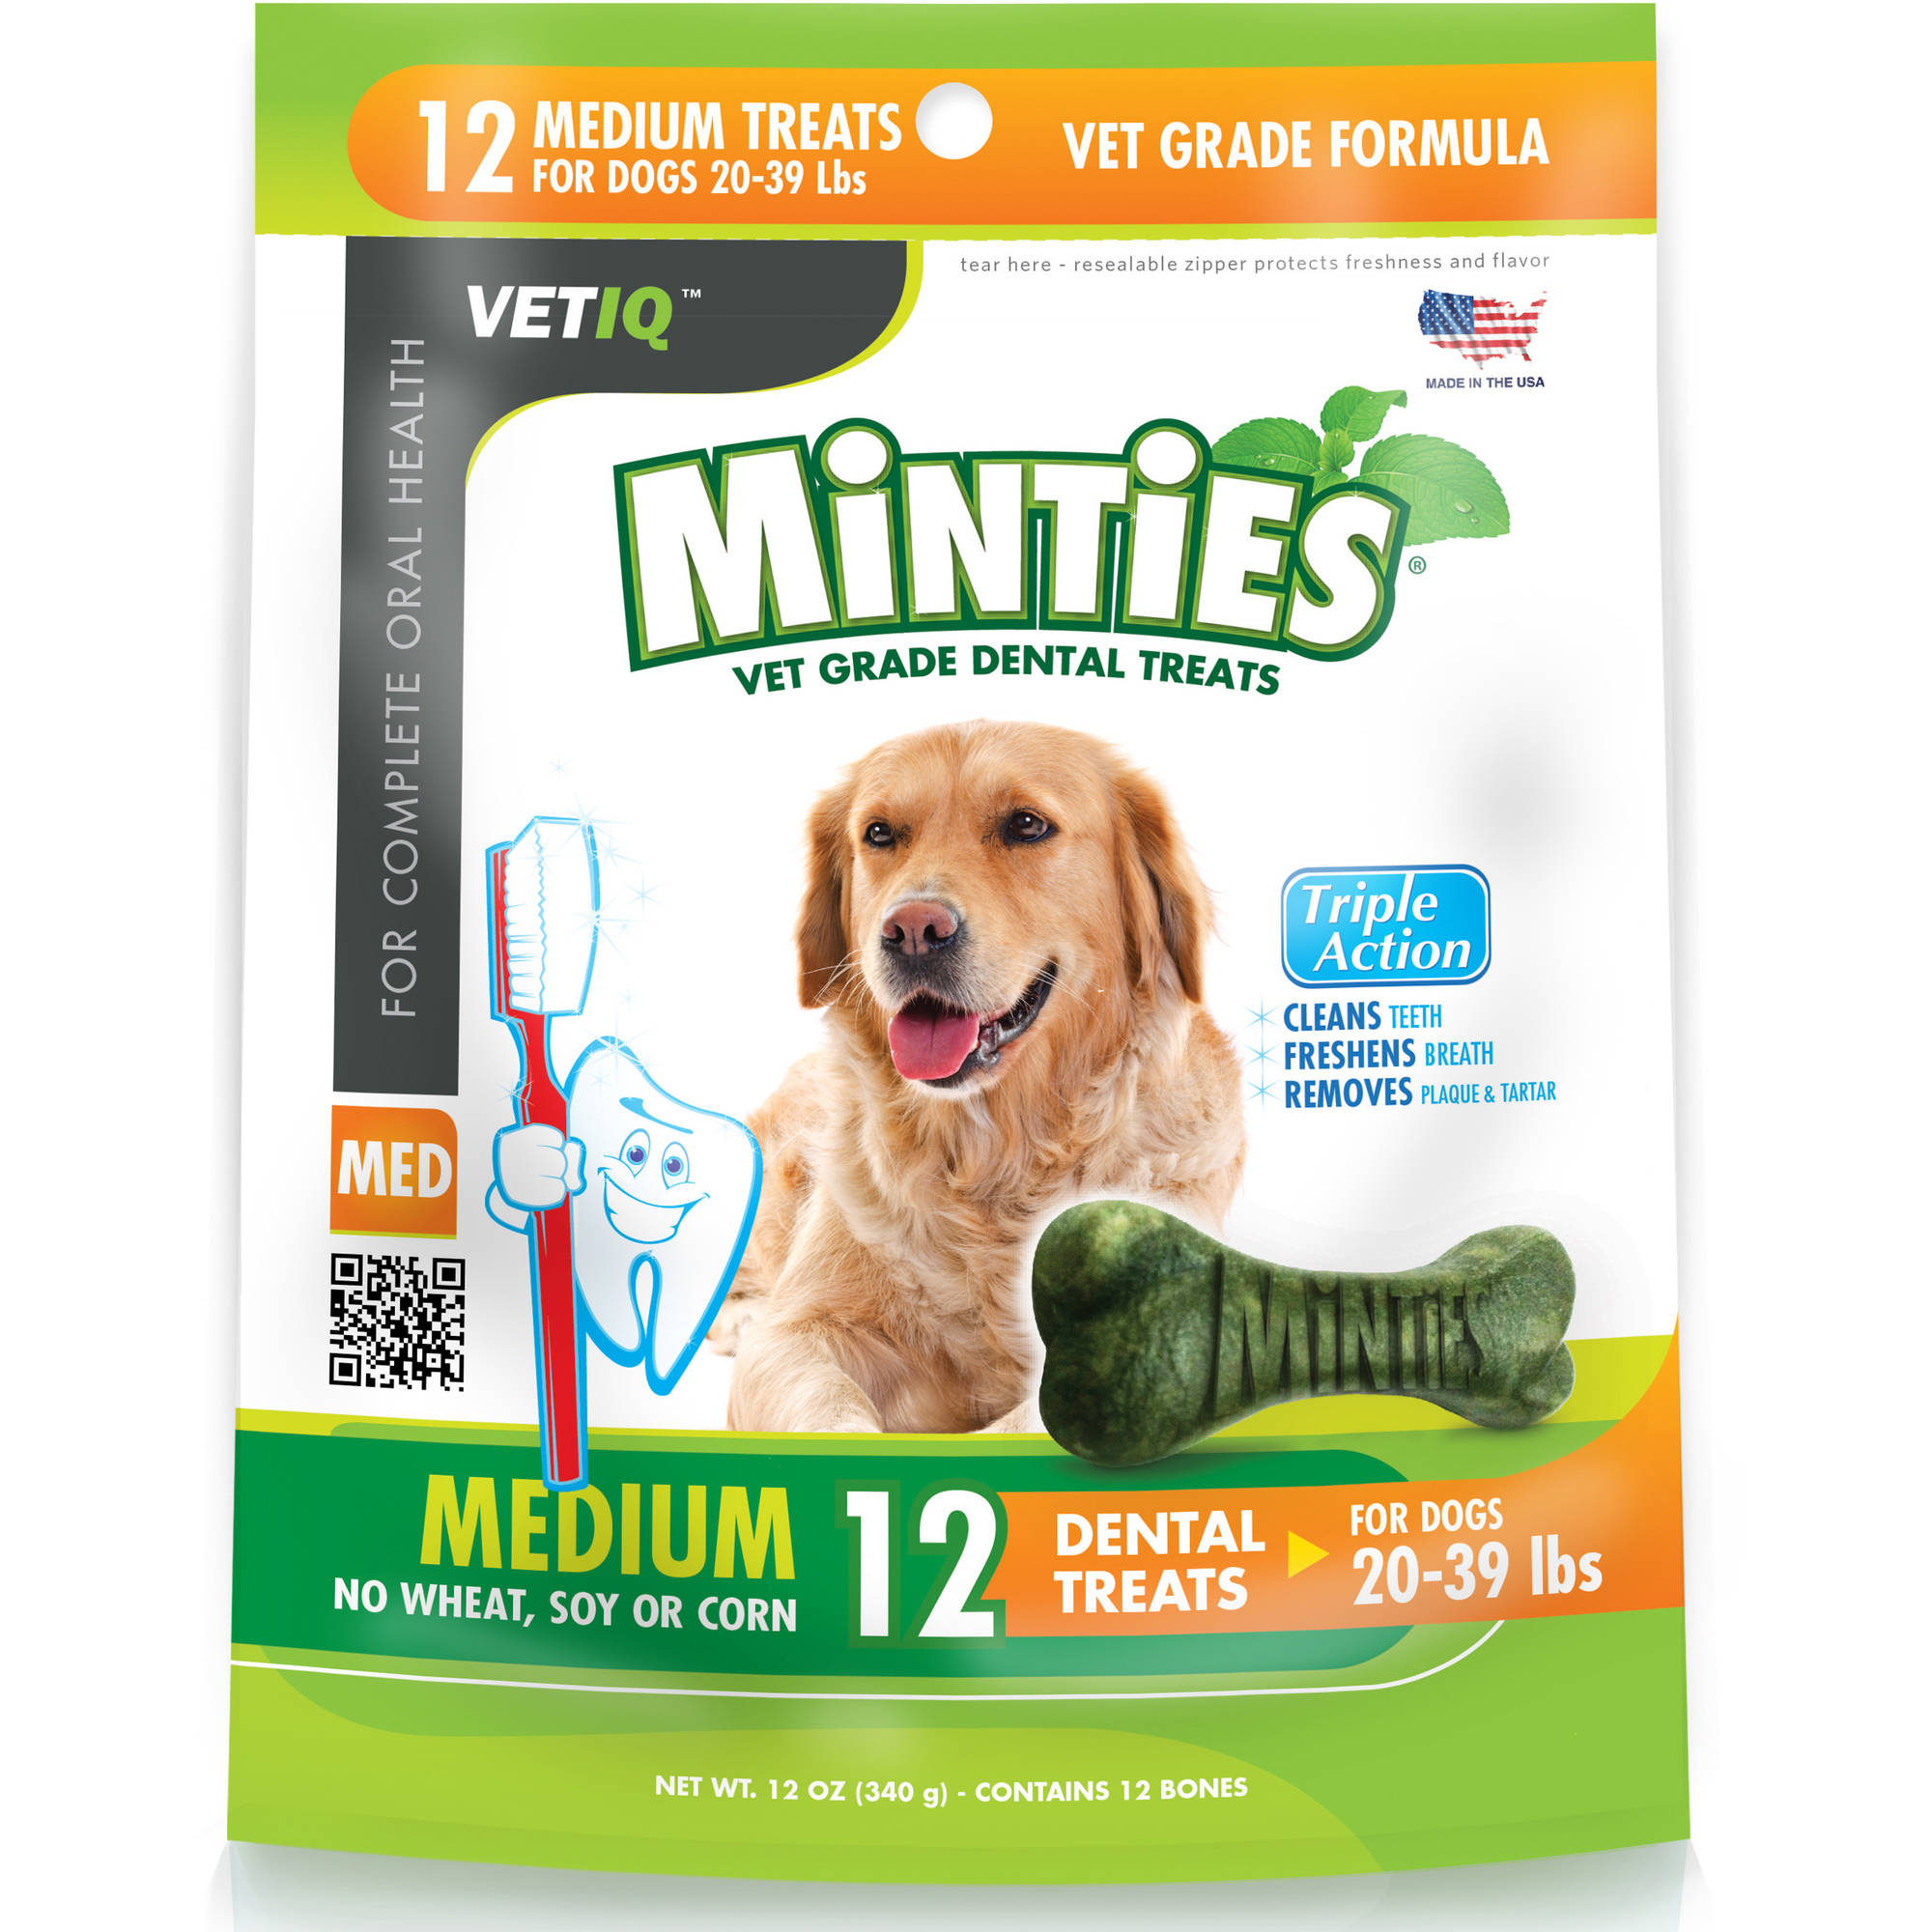 Minties from VetIQ Medium Dog Dental Treats, 12 oz